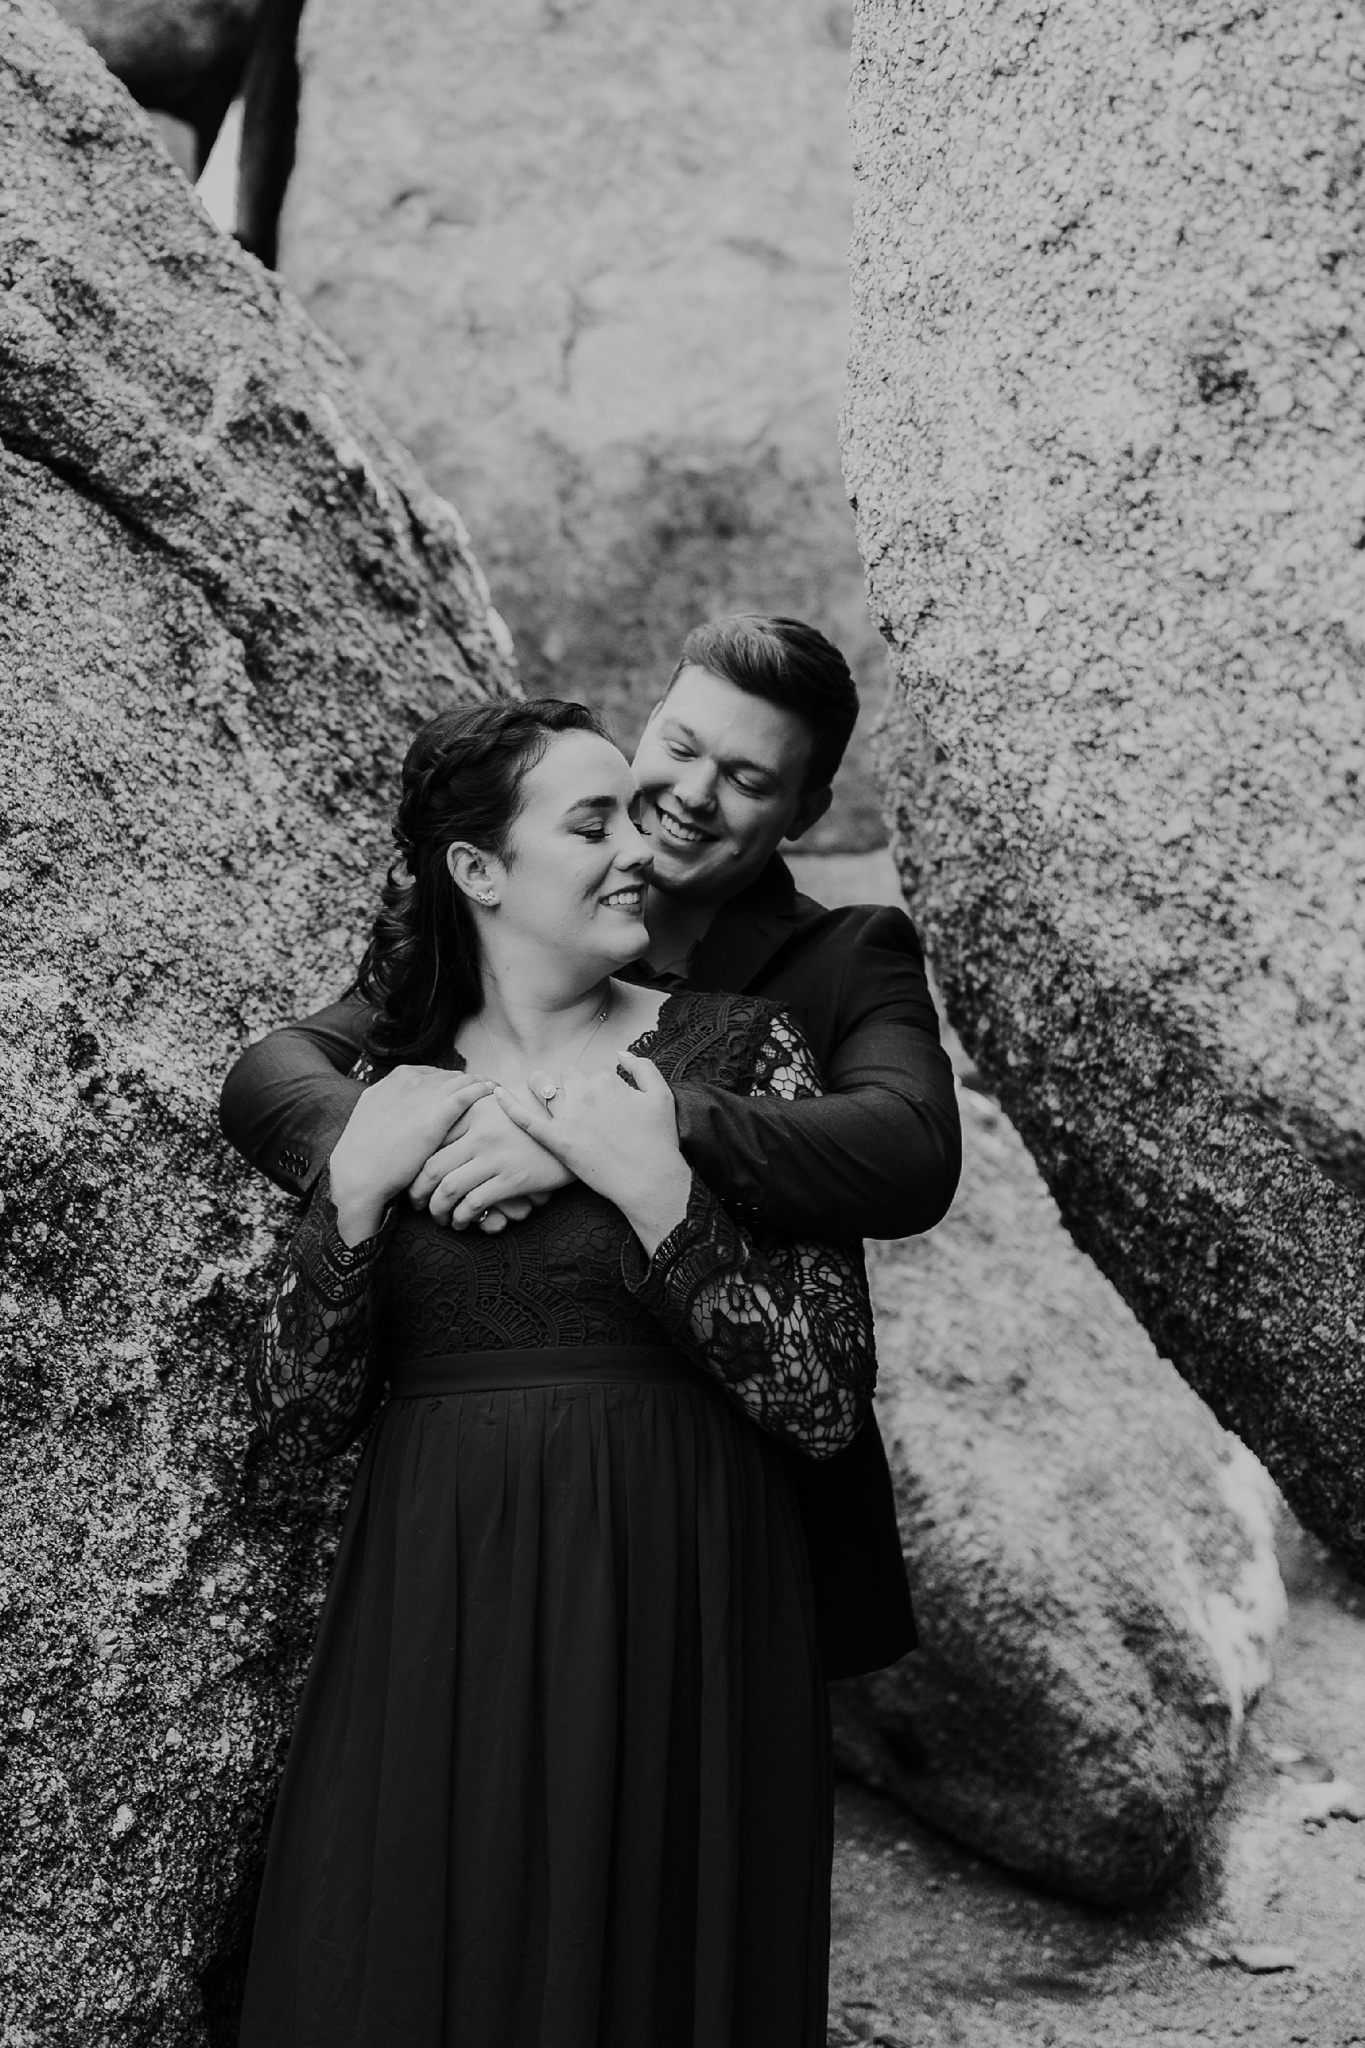 Alicia+lucia+photography+-+albuquerque+wedding+photographer+-+santa+fe+wedding+photography+-+new+mexico+wedding+photographer+-+new+mexico+wedding+-+engagement+-+albuquerque+engagement+-+winter+engagement+-+hyatt+tamaya+wedding_0003.jpg